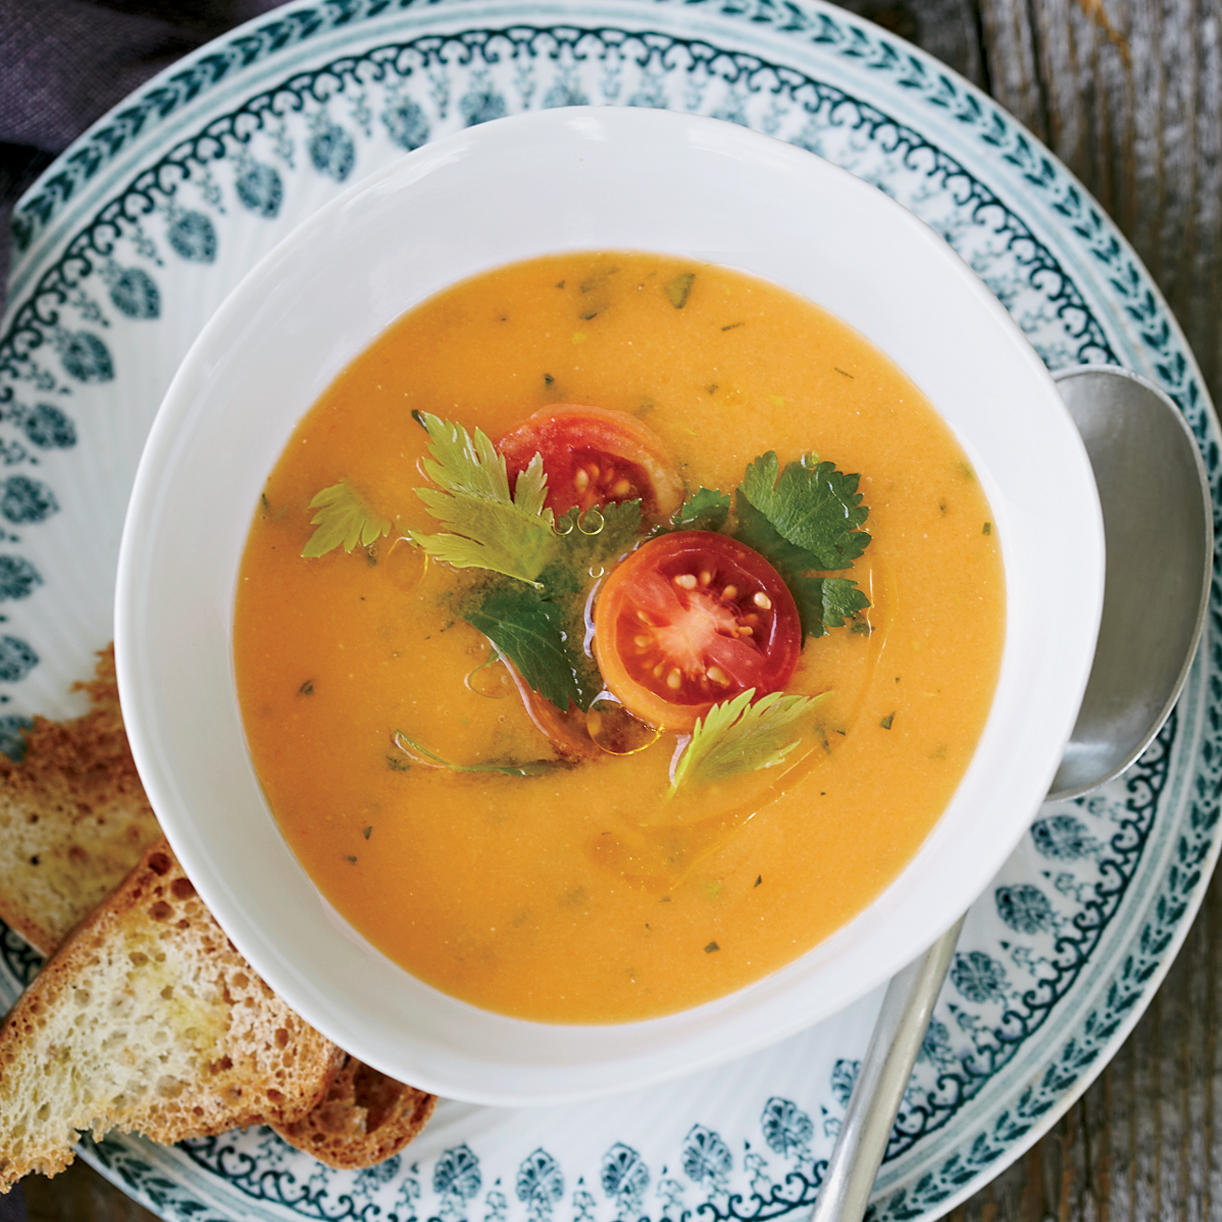 201108-r-chilled-tomato-soup.jpg